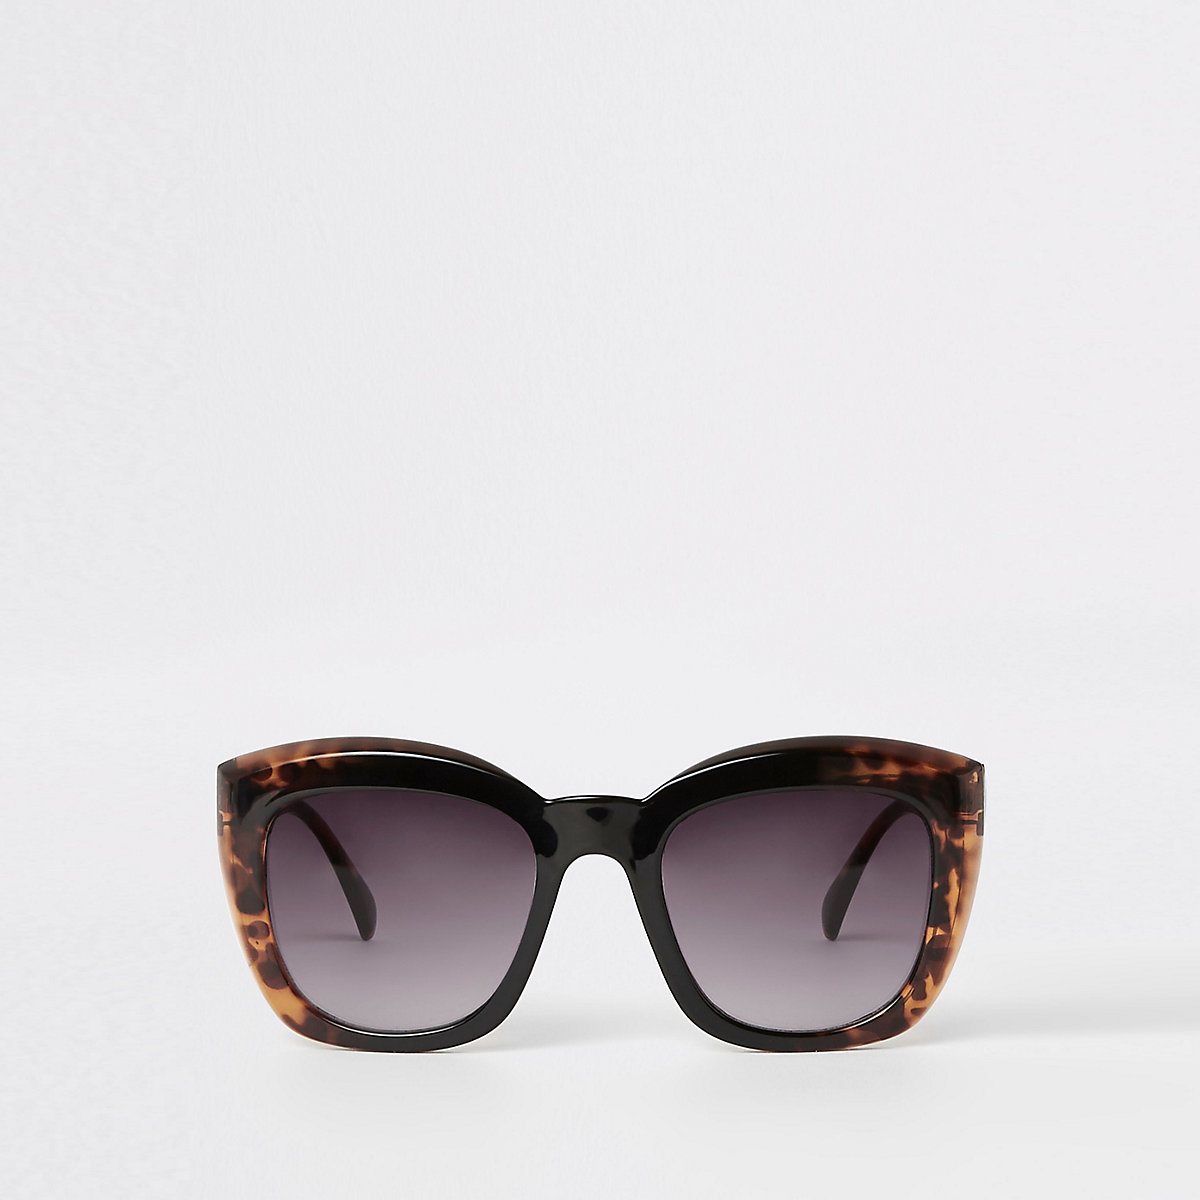 Brown tortoiseshell square glam sunglasses